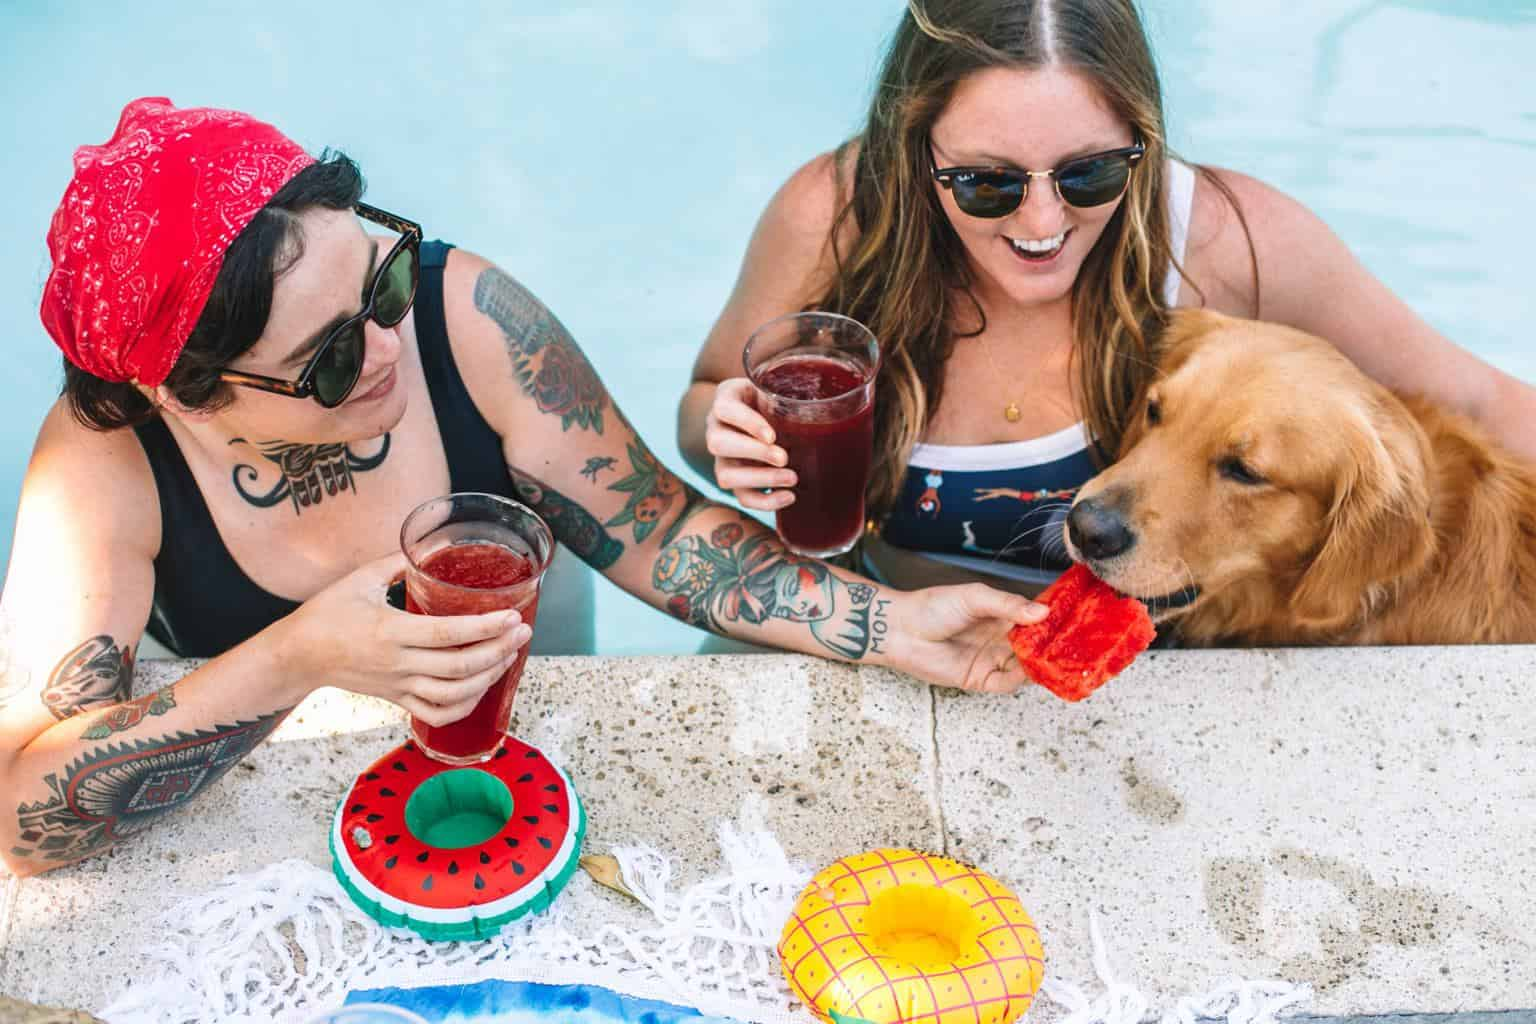 Two girls inside of a swimming pool feeding a dog a piece of watermelon.